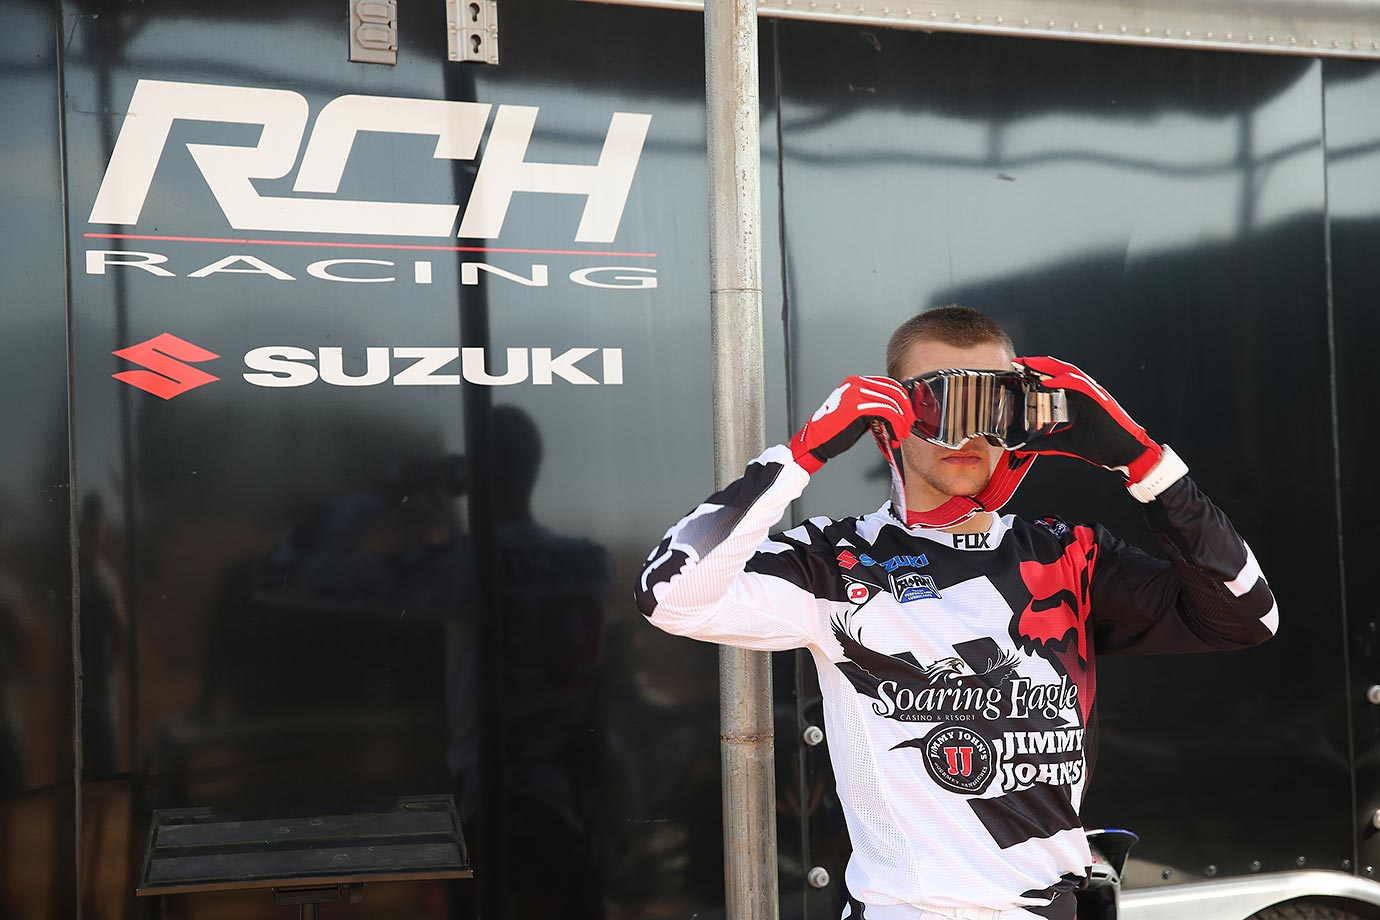 Ken Roczen, who races for the RCH Racing Suzuki team in Supercross, adjusts his goggles before taking to the dirt track for practice this week.